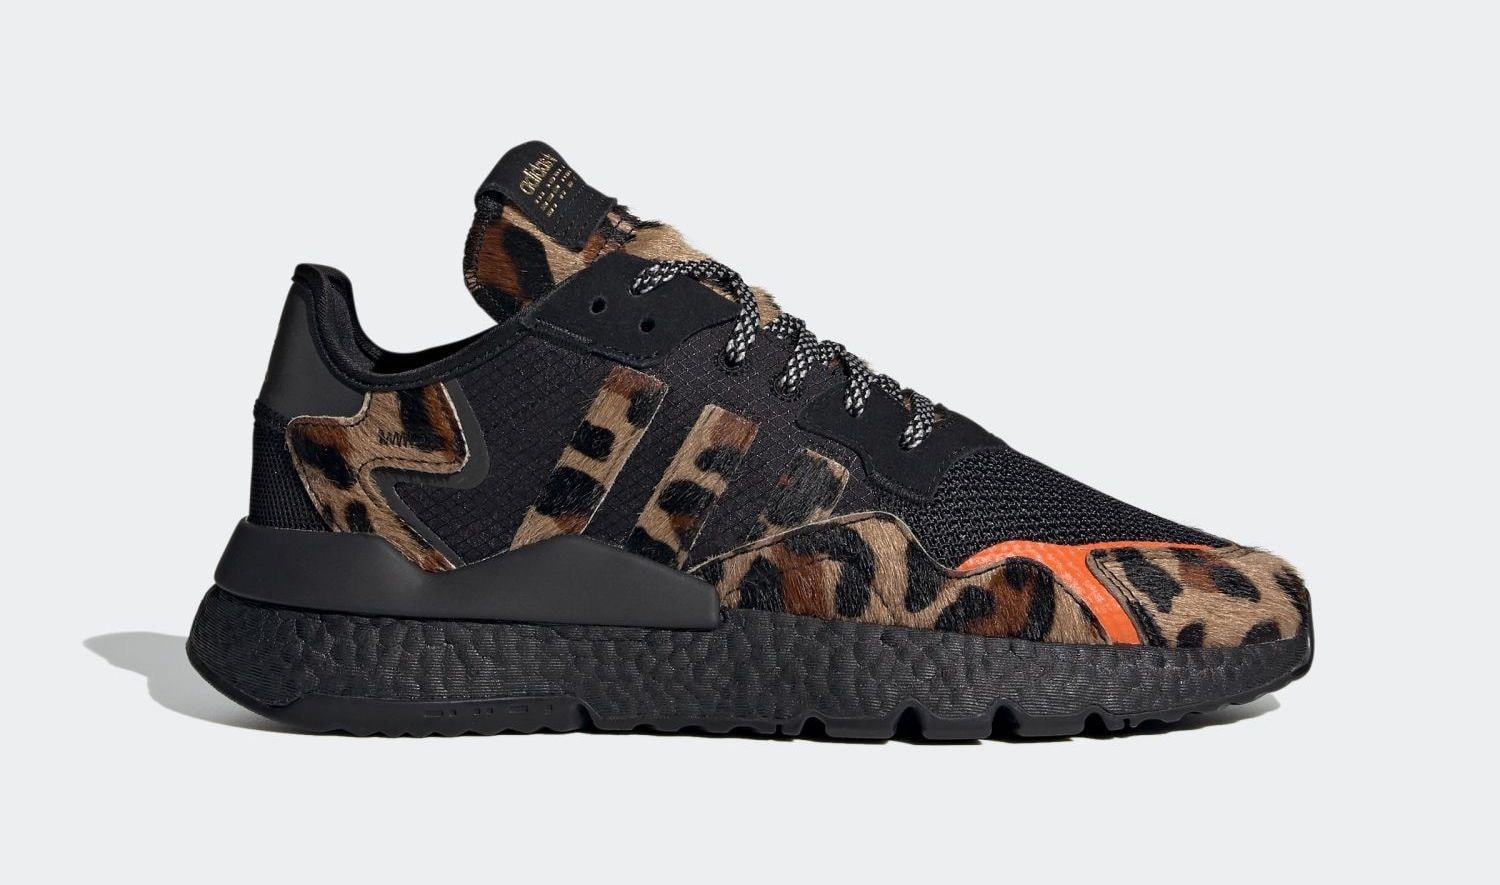 Official Look: UPTOWN Deluxe x adidas Nite Jogger